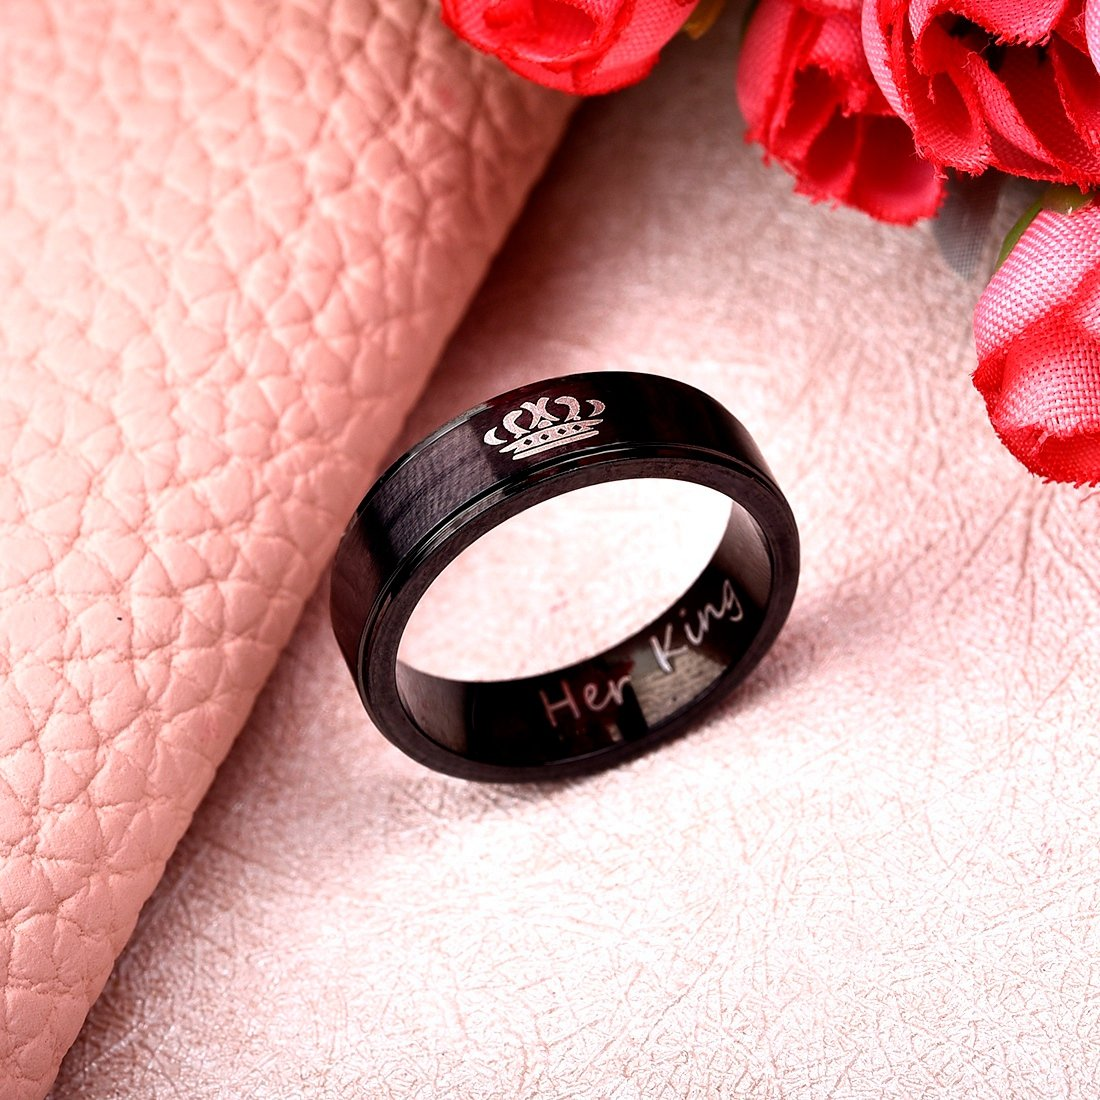 OBSEDE Simple Black Couple Ring His Queen Her King Band Ring for ...